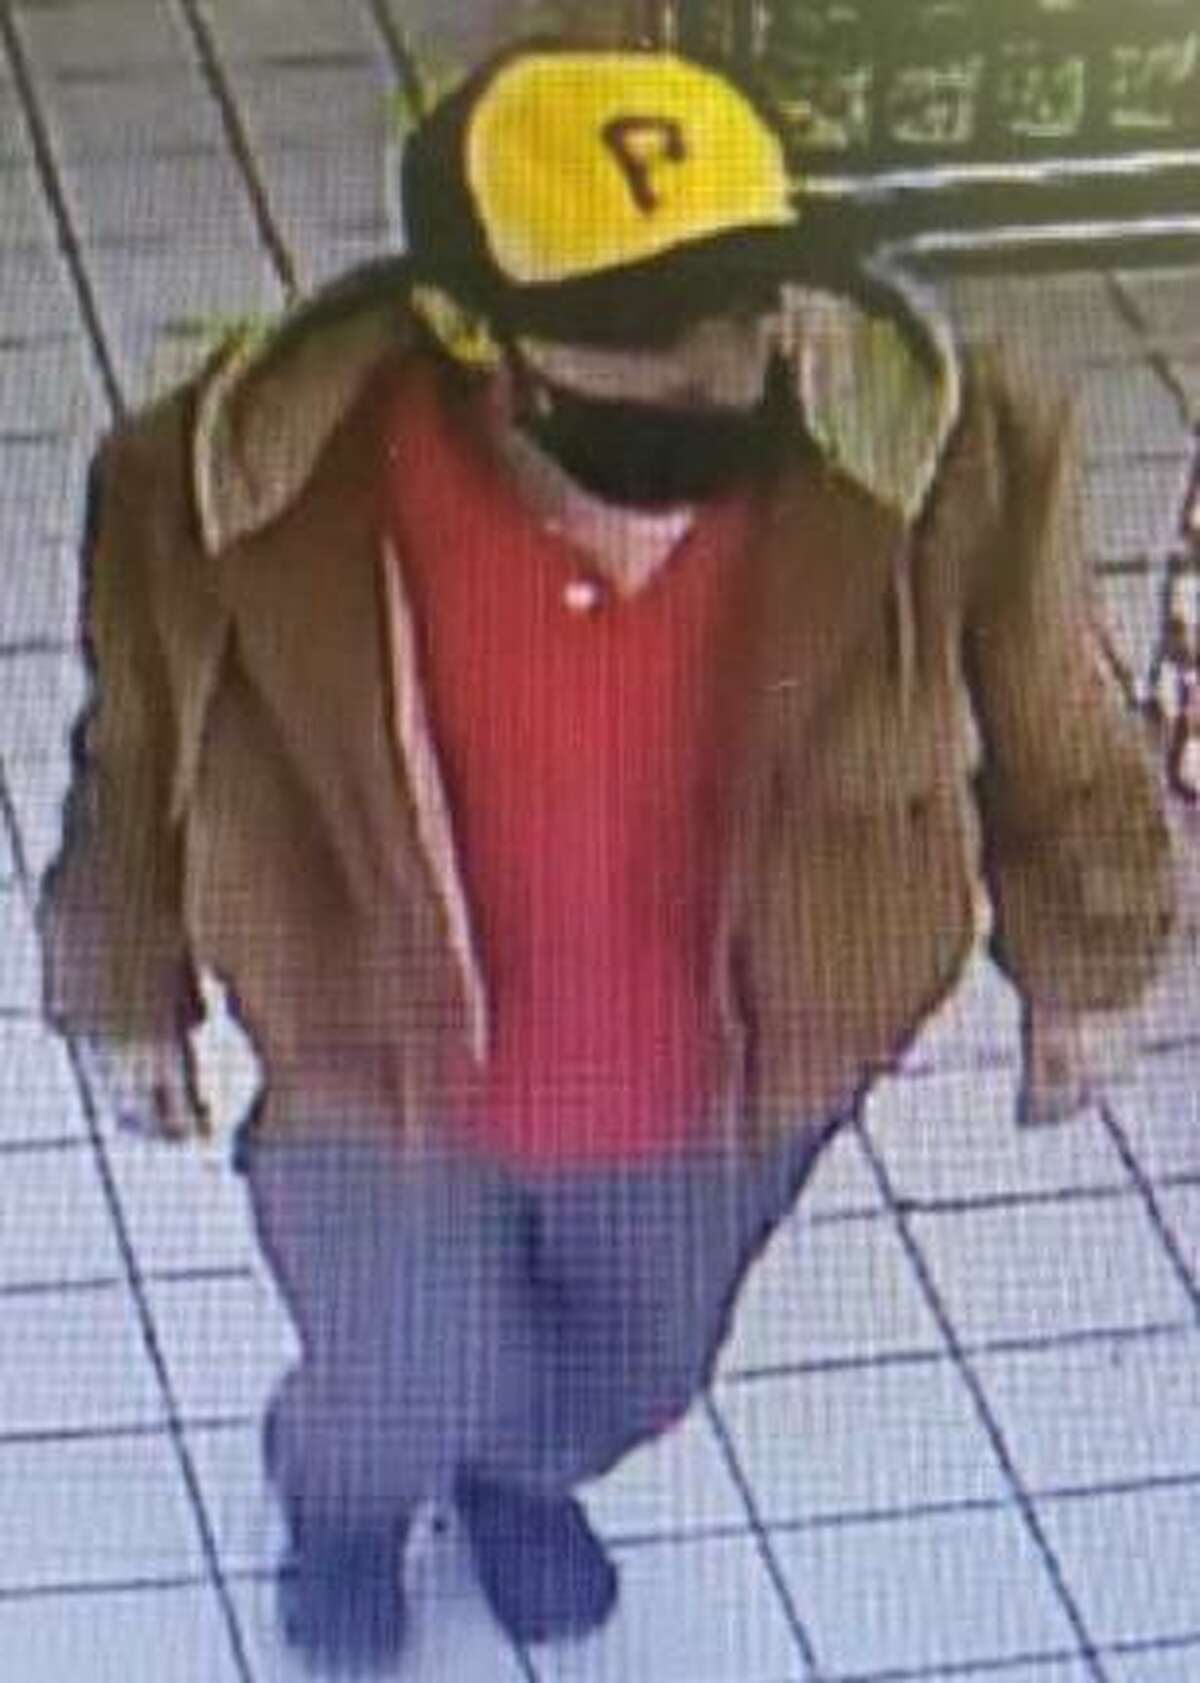 Laredo police said they need help in locating this person. Authorities said he is wanted in connection with a robbery.